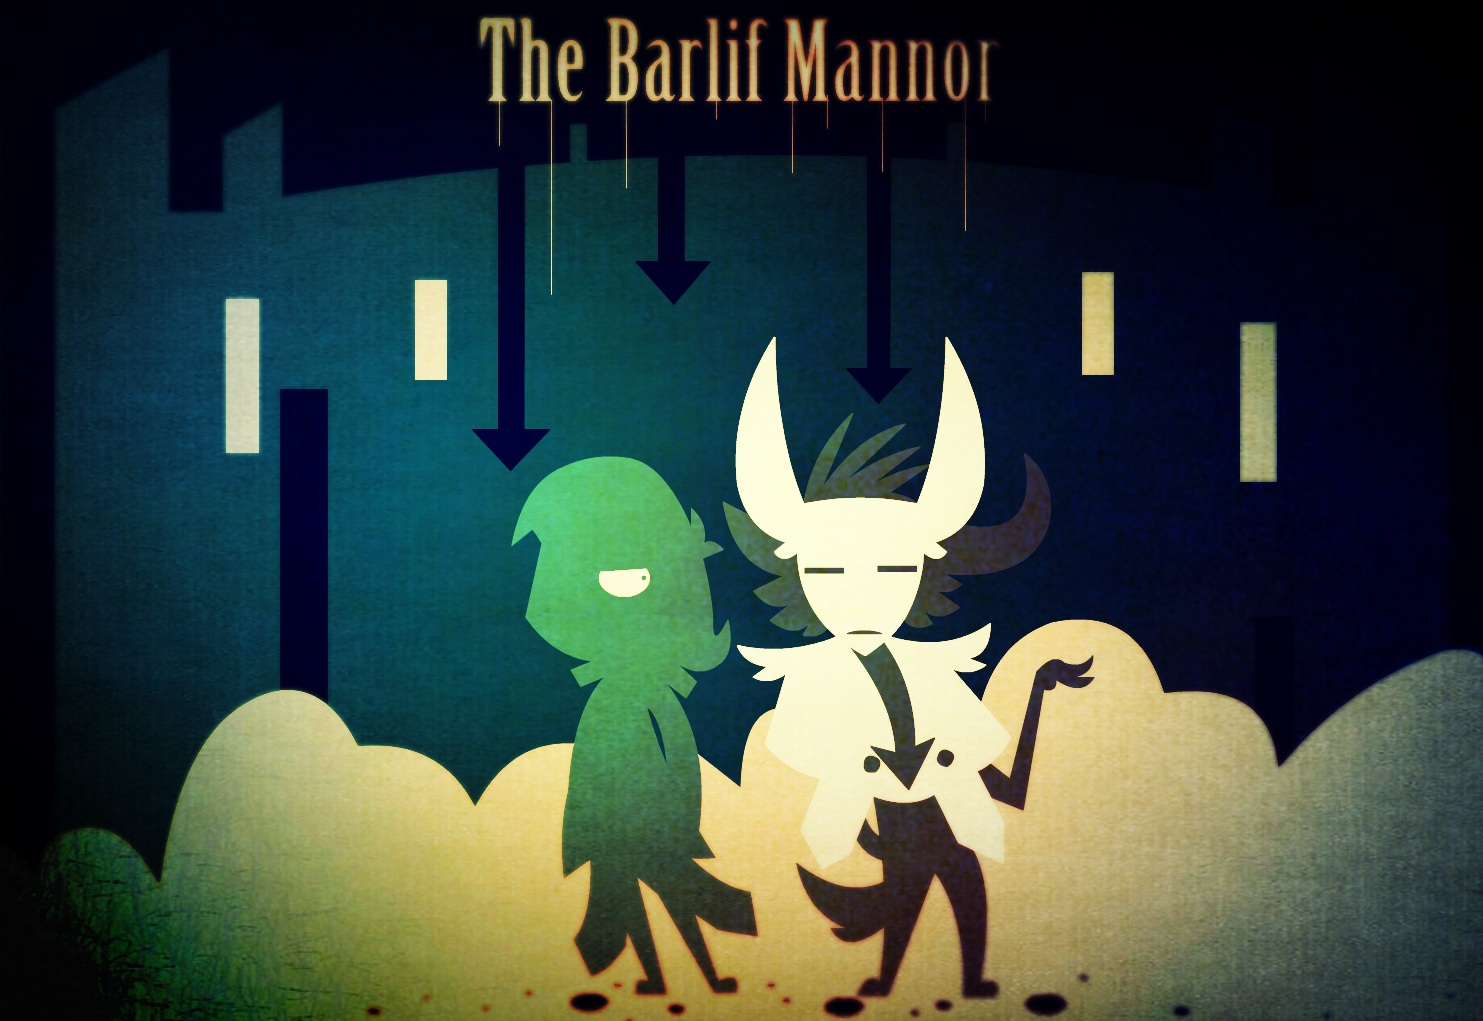 The barlif Mannor ( chapter 1)